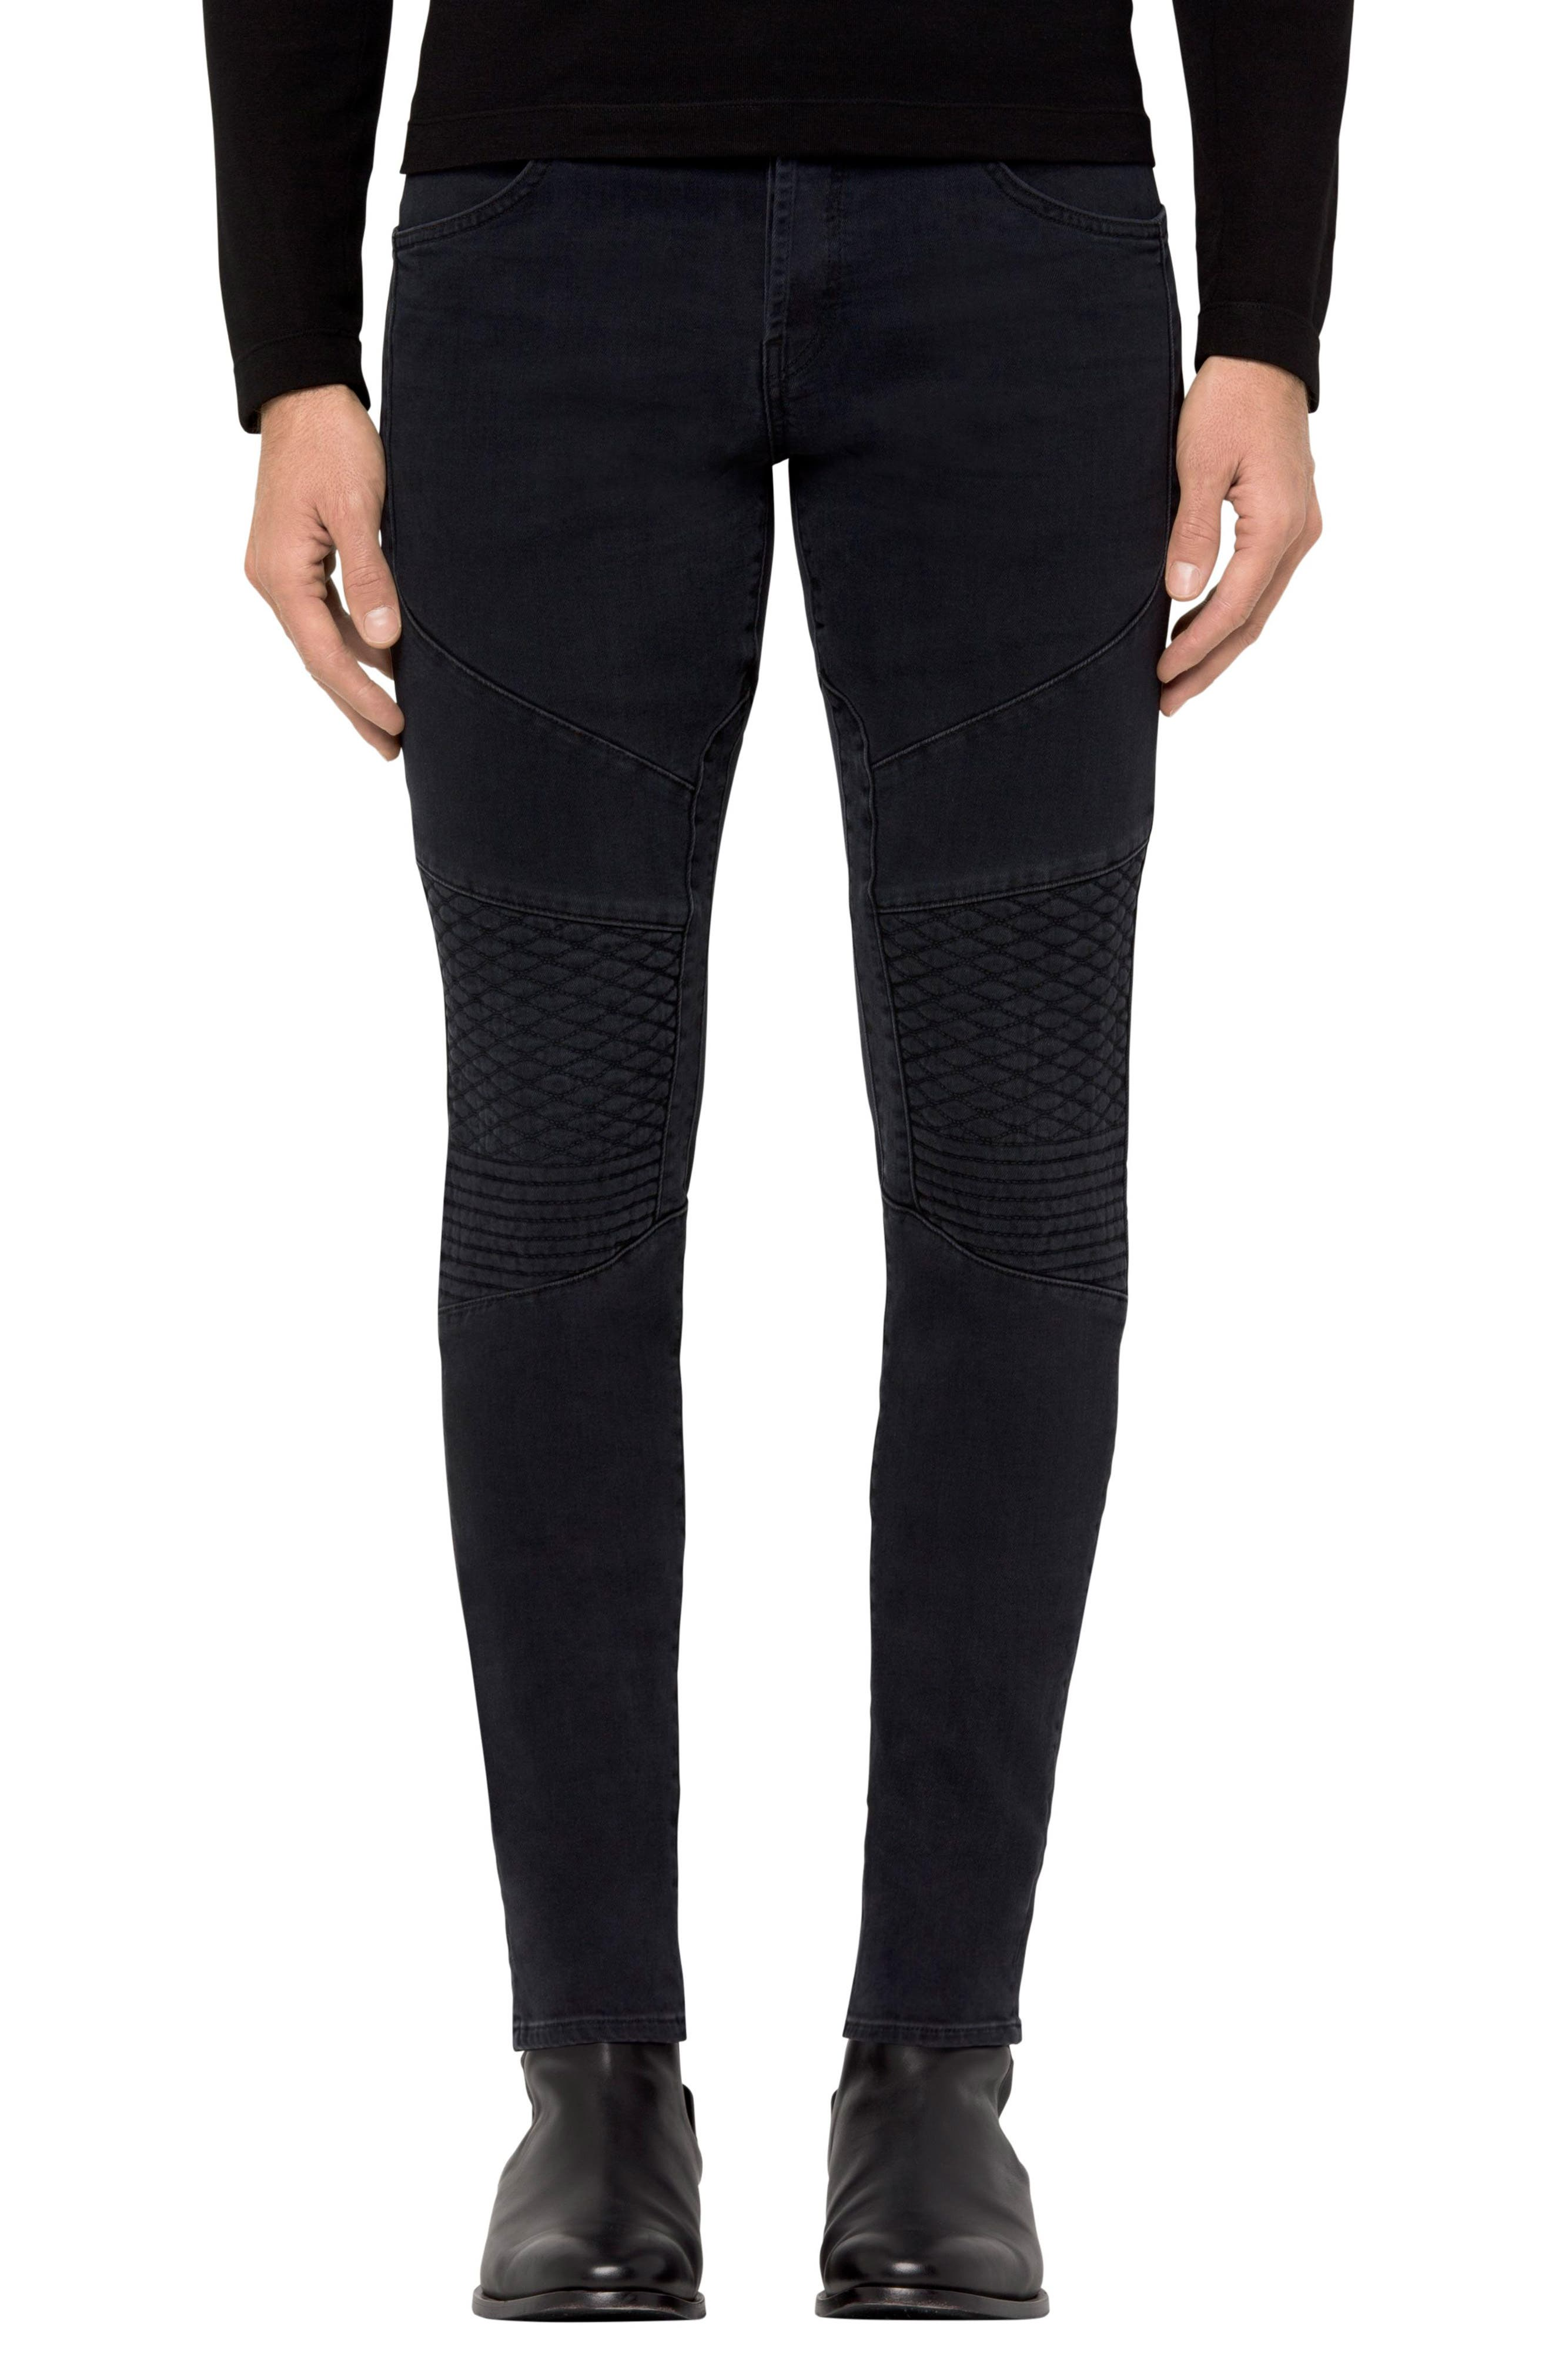 Bearden Moto Skinny Fit Jeans,                         Main,                         color, Alpha